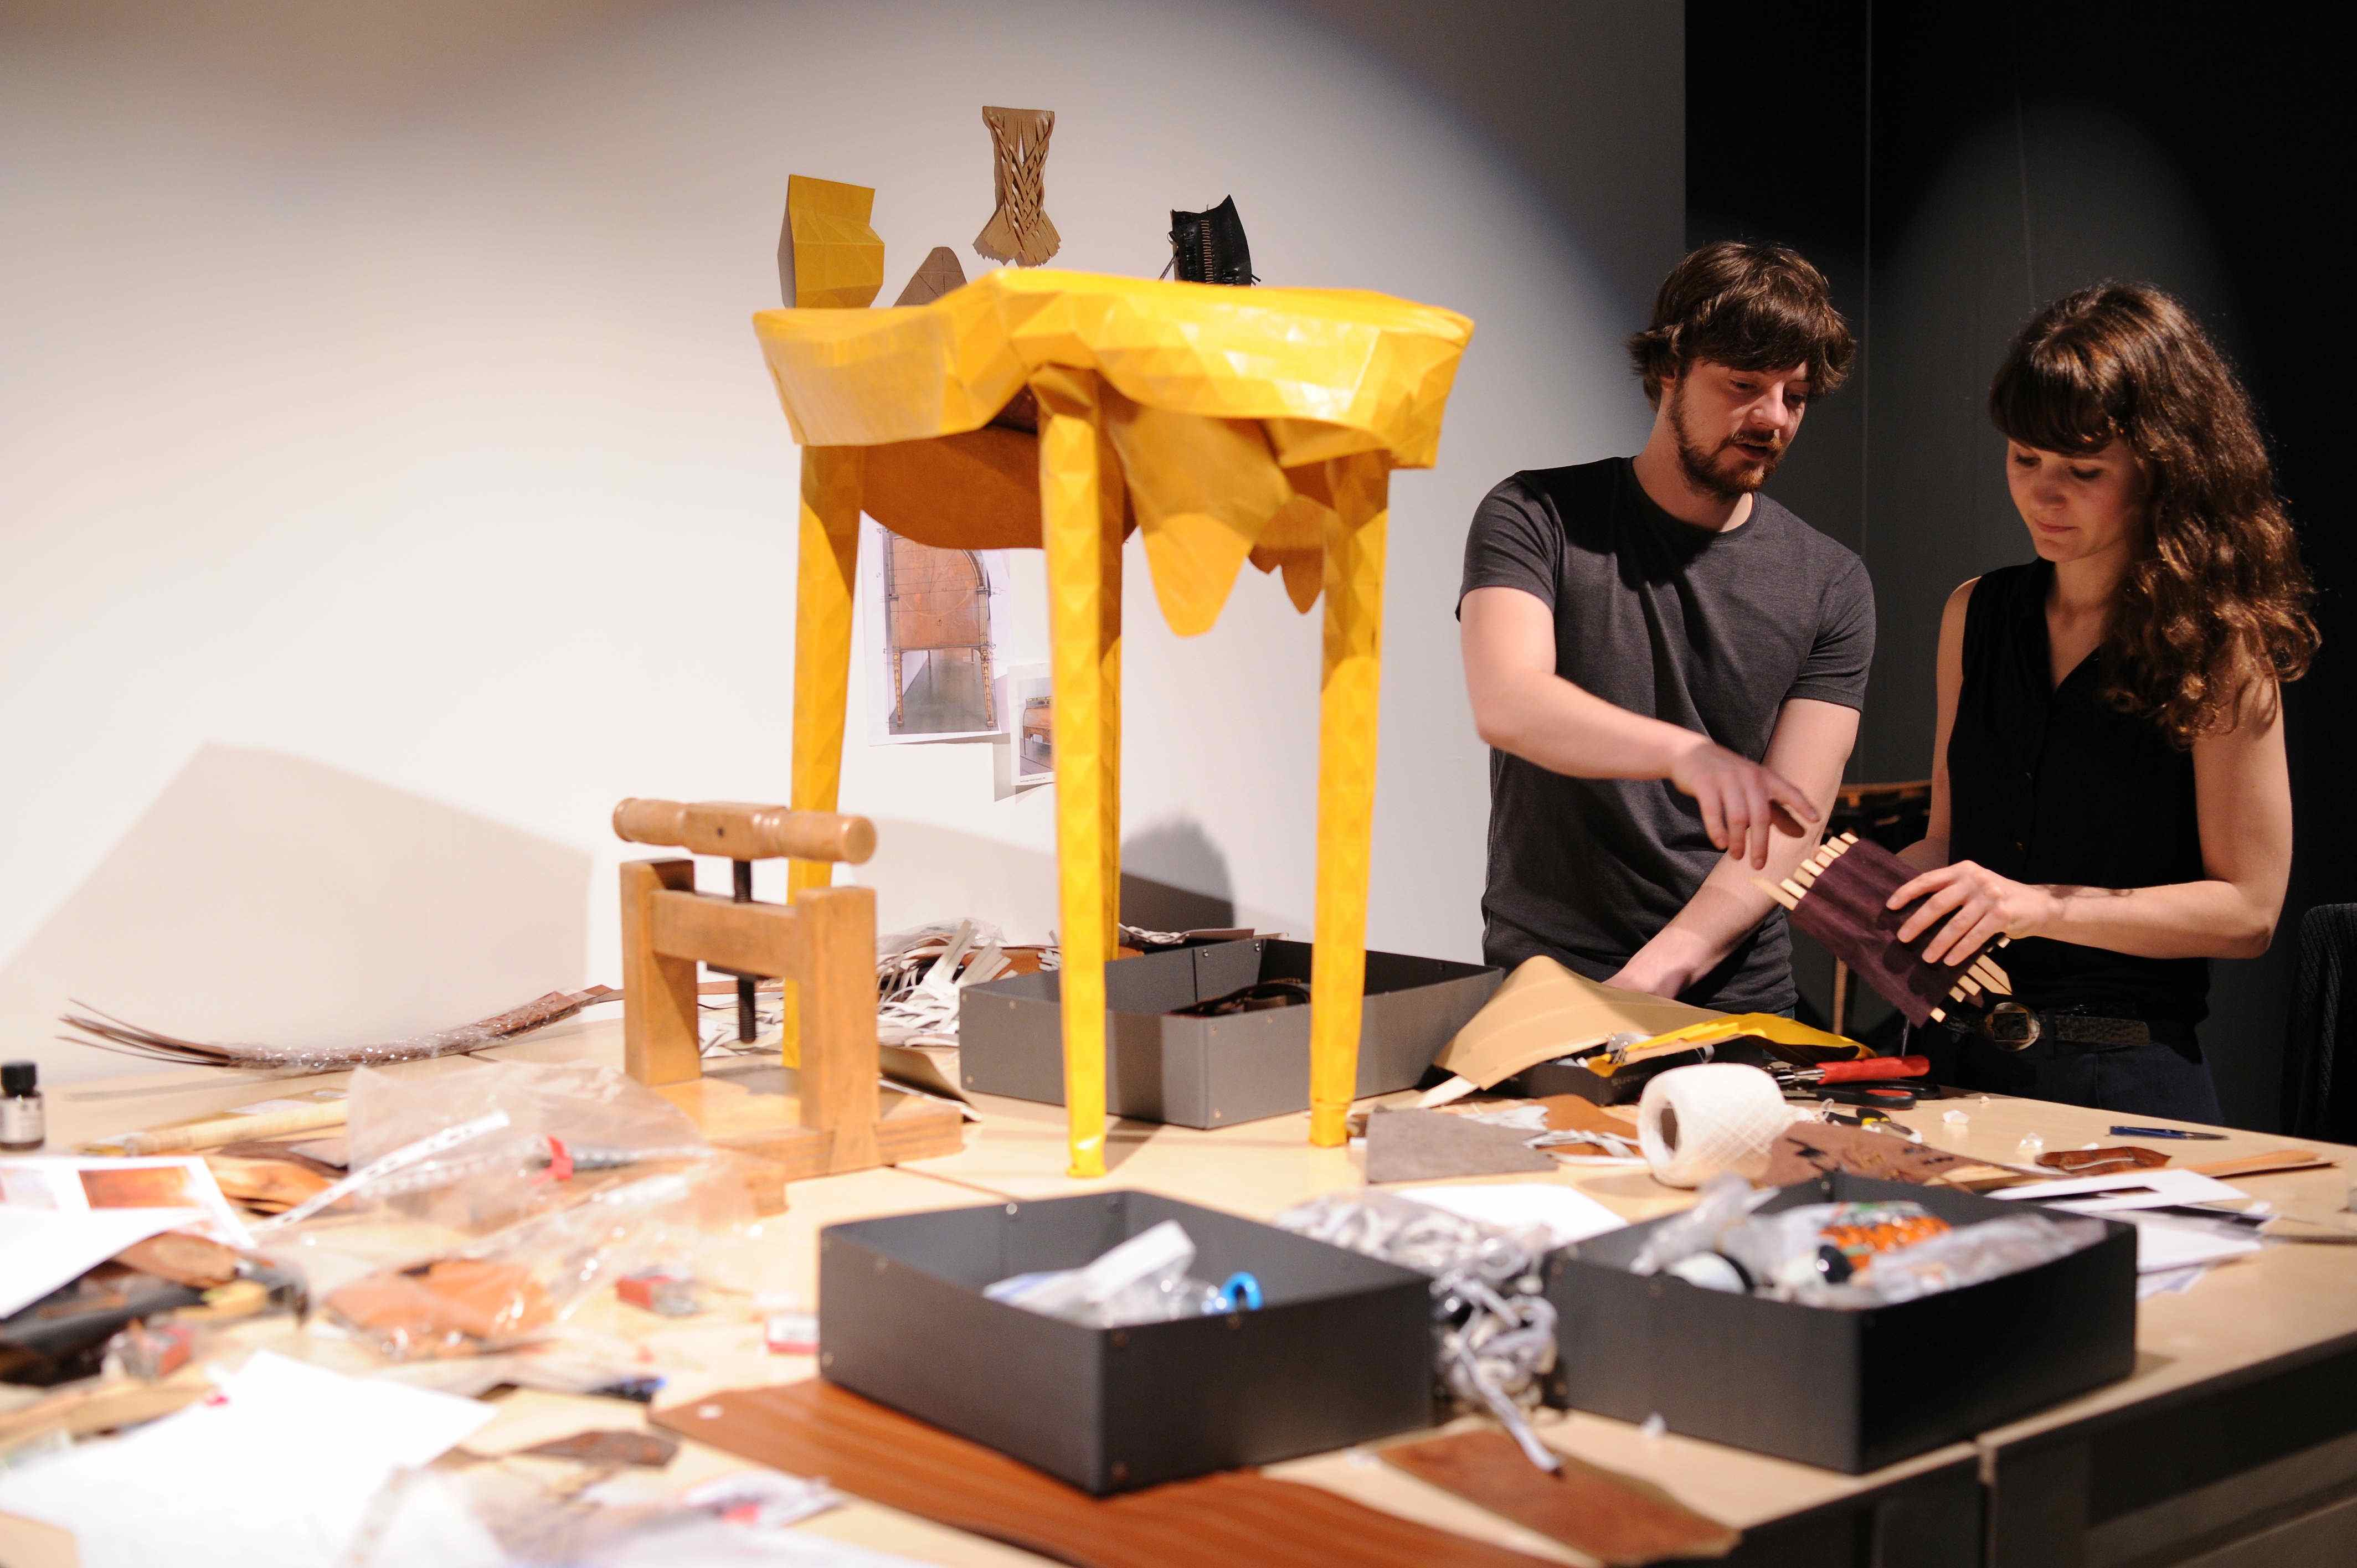 FENDI Design Miami Craft Alchemy_Elisa Strozyk and Sebastian Neeb at work 5